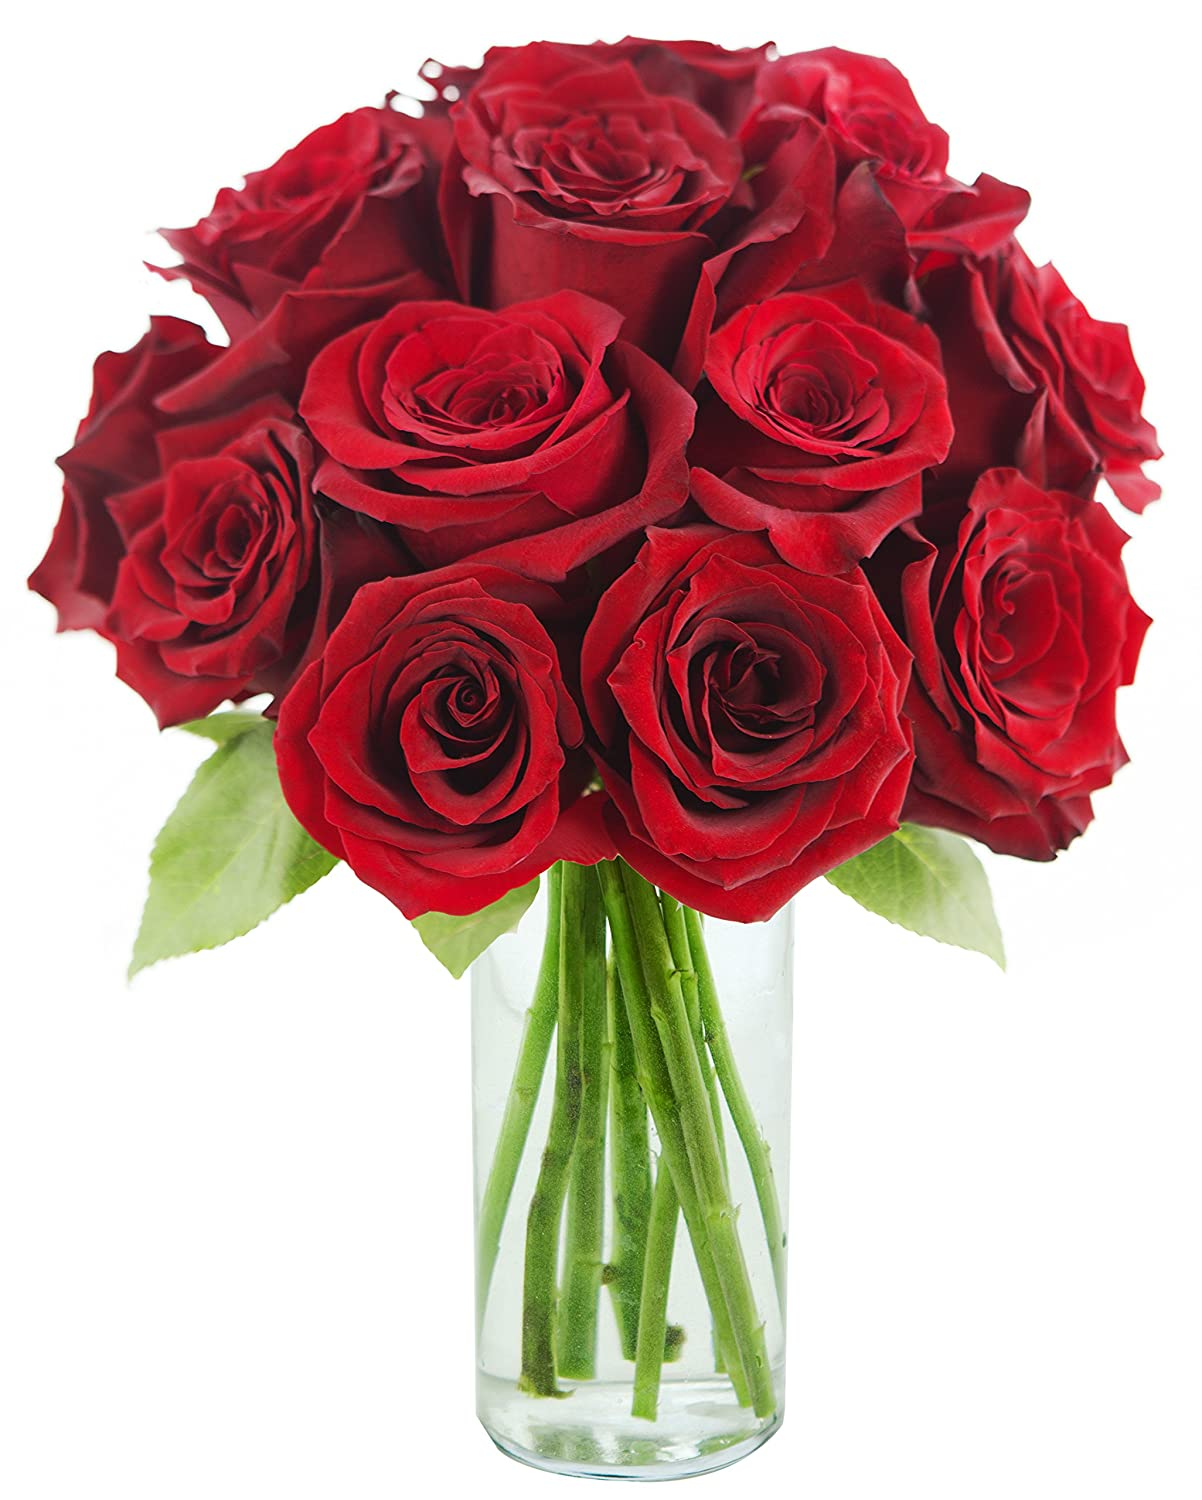 Kabloom One Dozen A Classic Romance Red Roses Bouquet with Vase, 2.5 Pound